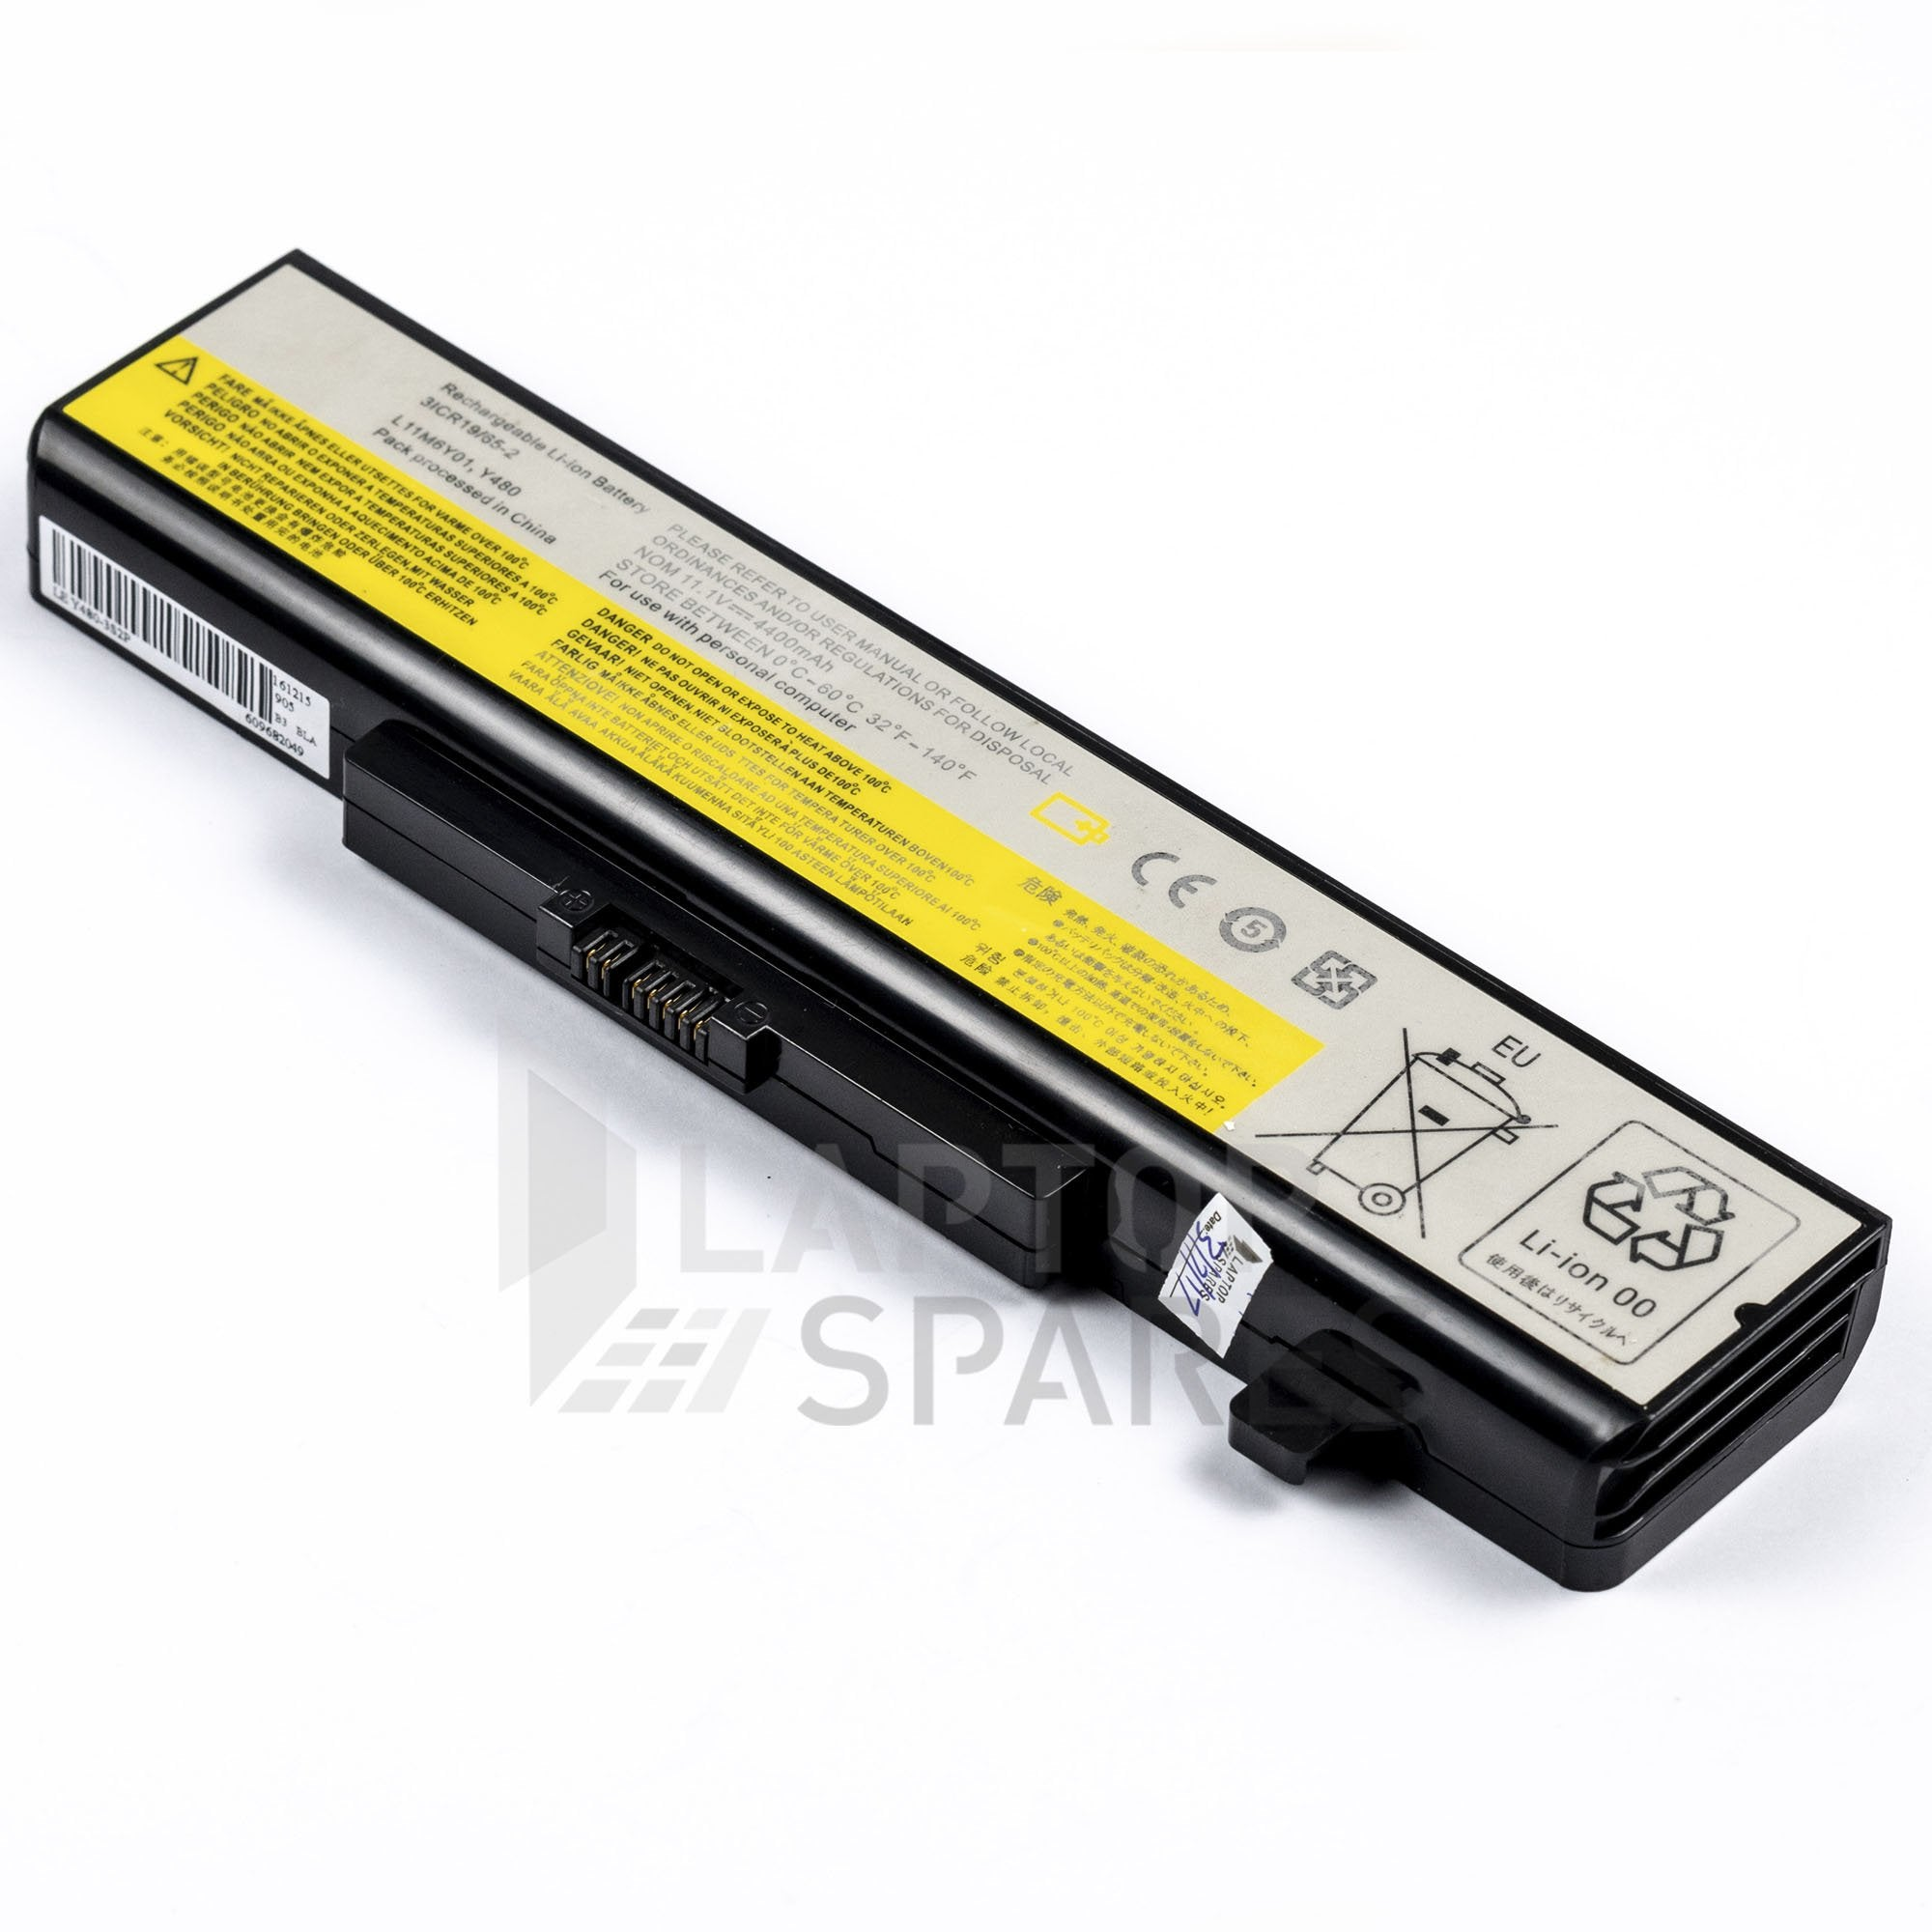 Lenovo IdeaPad N585 N586 4400mAh 6 Cell Battery